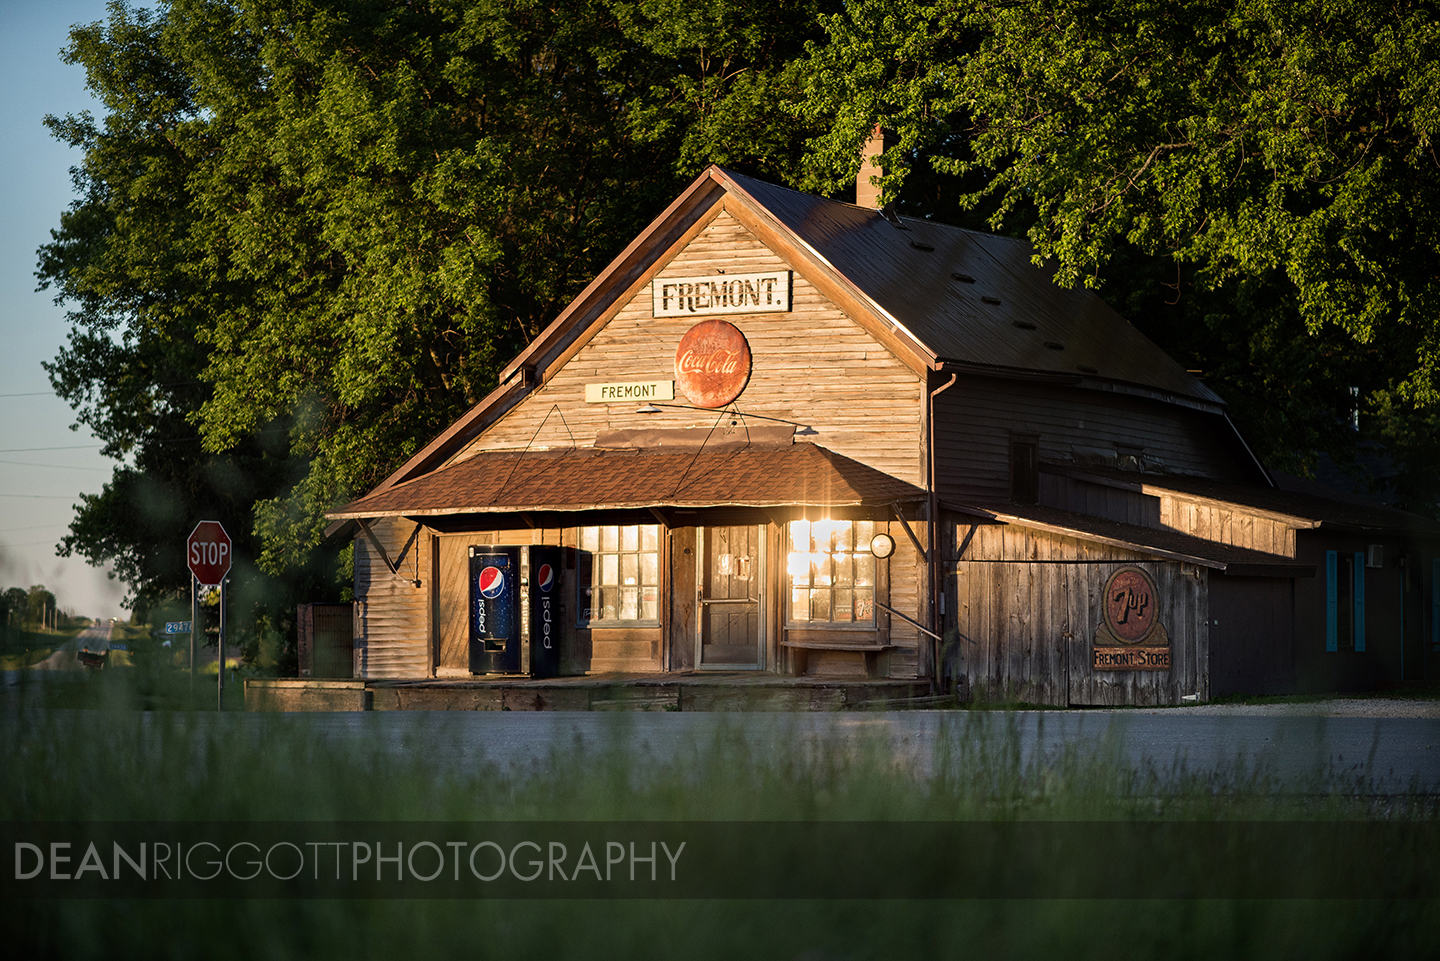 As an agricultural photographer in the midwest I am constantly out driving the backroads heading somewhere. A few weeks ago I was all over southern Minnesota photographing farmers with their vintage tractors for a project SEMA Equipment is working on. When passing through Fremont, Minnesota, I came upon this very old country store, which I had actually stopped to photograph in the past. But this time the lighting was absolutely beautiful as the sun was about to set, so I just had to stop. The Fremont Store, located just south of Lewiston, Minnesota, was built in 1856 and still functions as a store today. It is currently owned and operated by 101-year-old, Martha Johnson, who lives right next door.